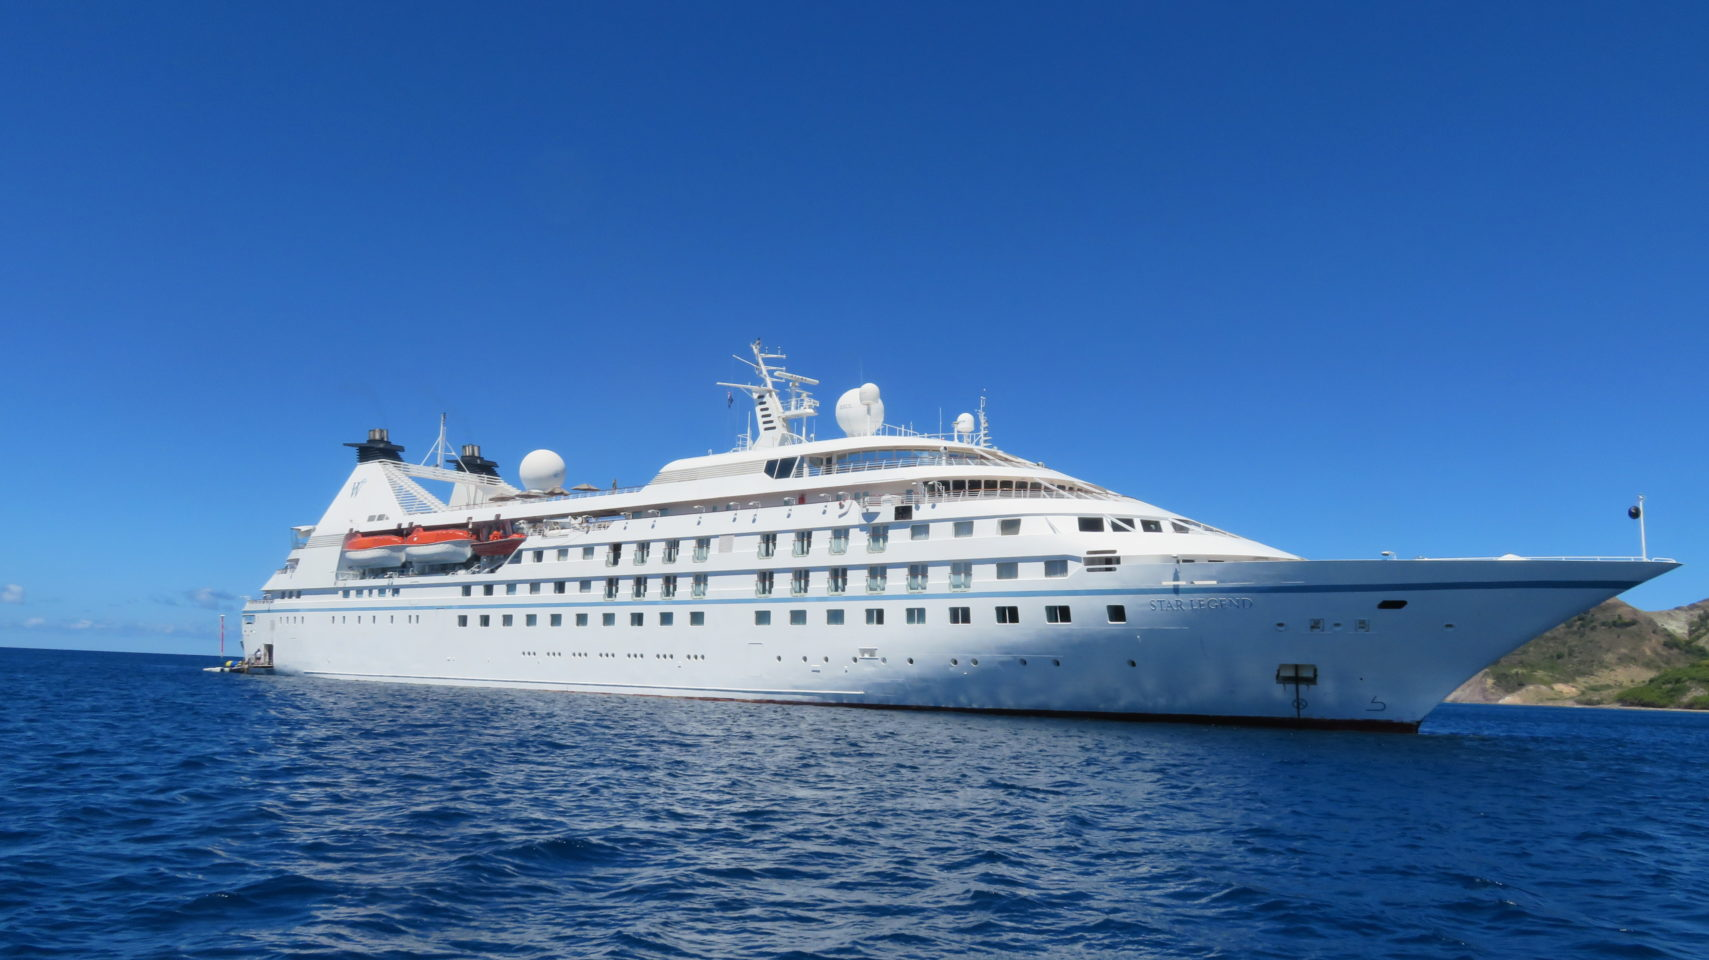 Windstar Cruises ~ Star Legend in the Caribbean